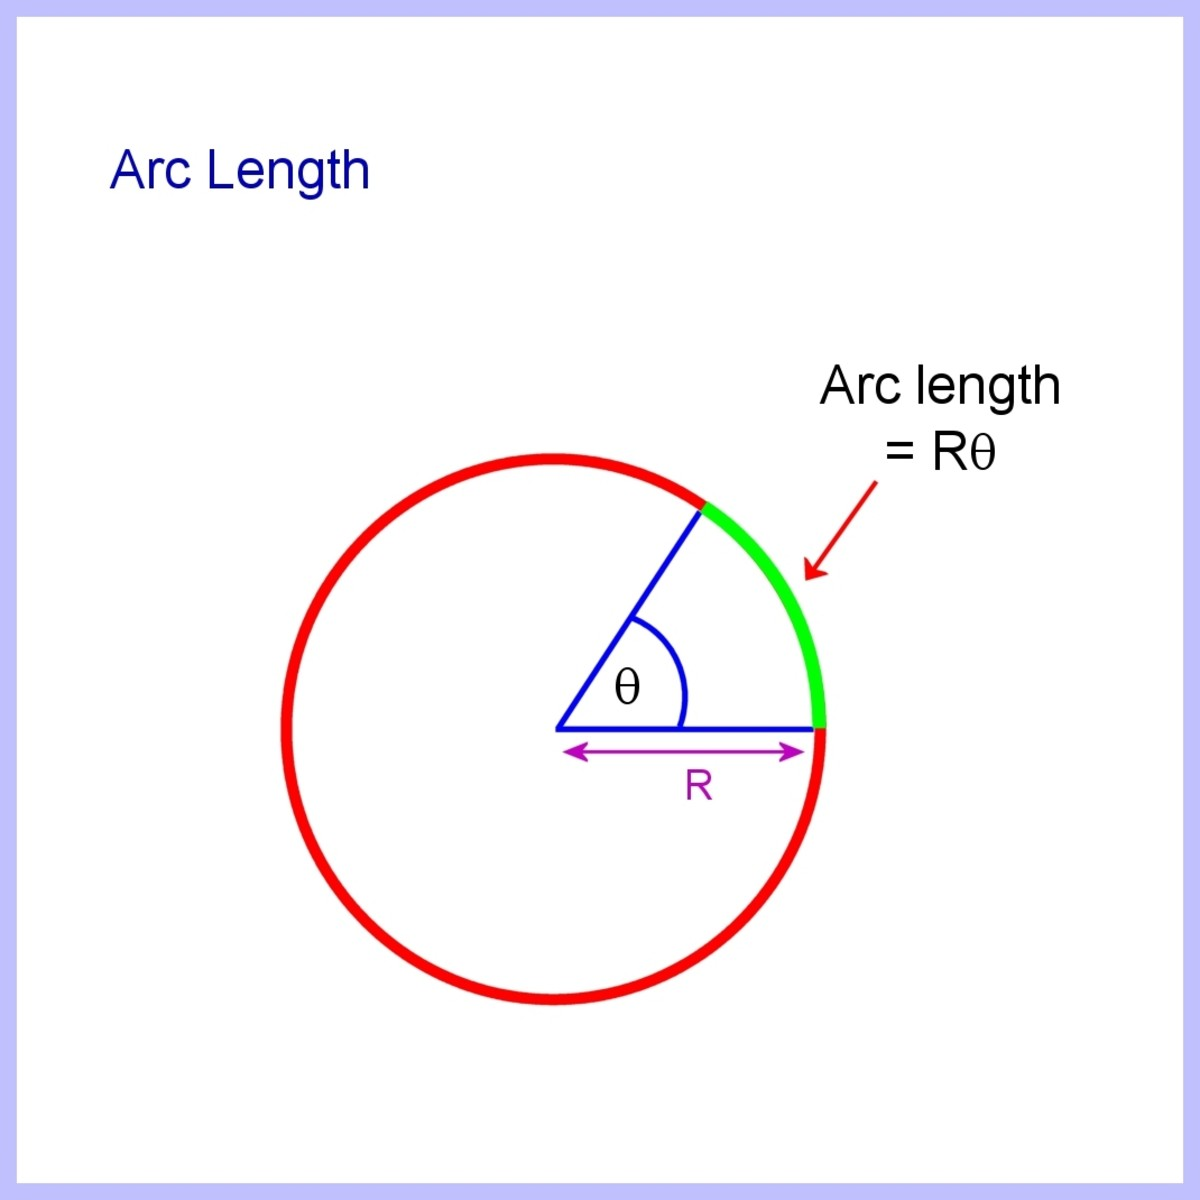 Arc length is Rθ when θ is in radians